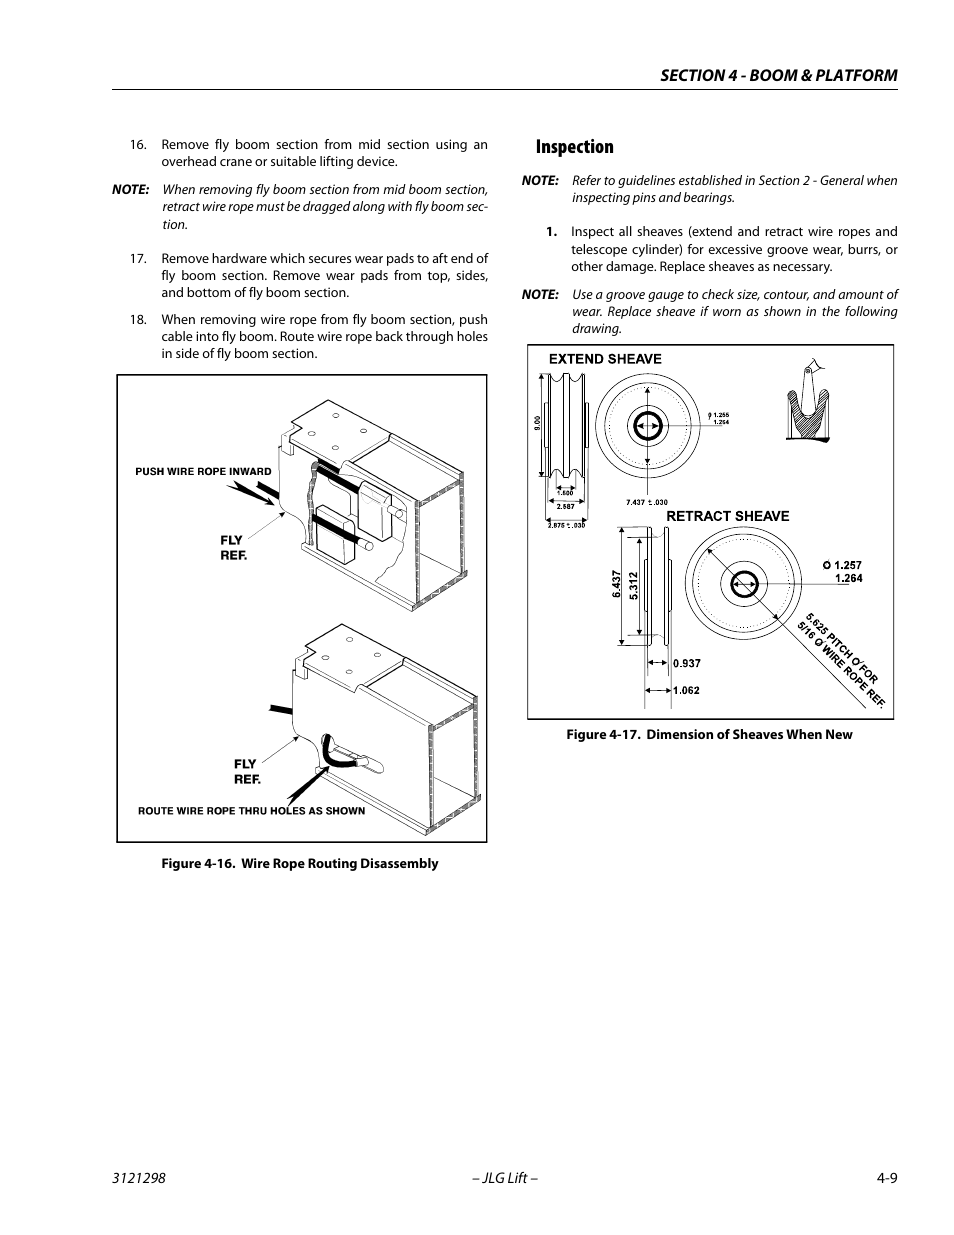 Aluminum Wiring Inspections Manual Guide